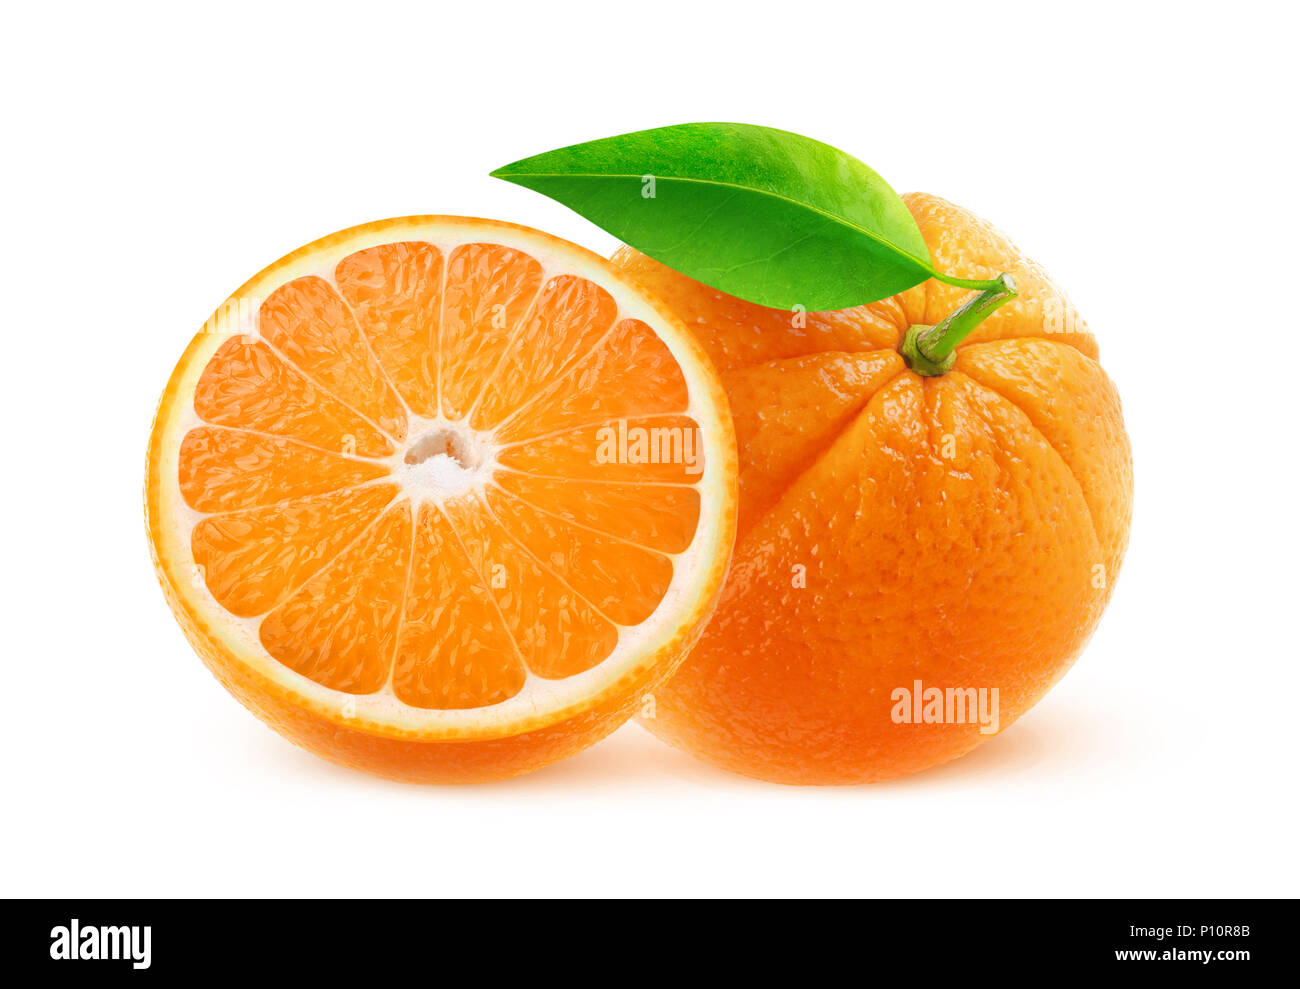 Isolated fruits. One and half oranges isolated on white background with clipping path - Stock Image